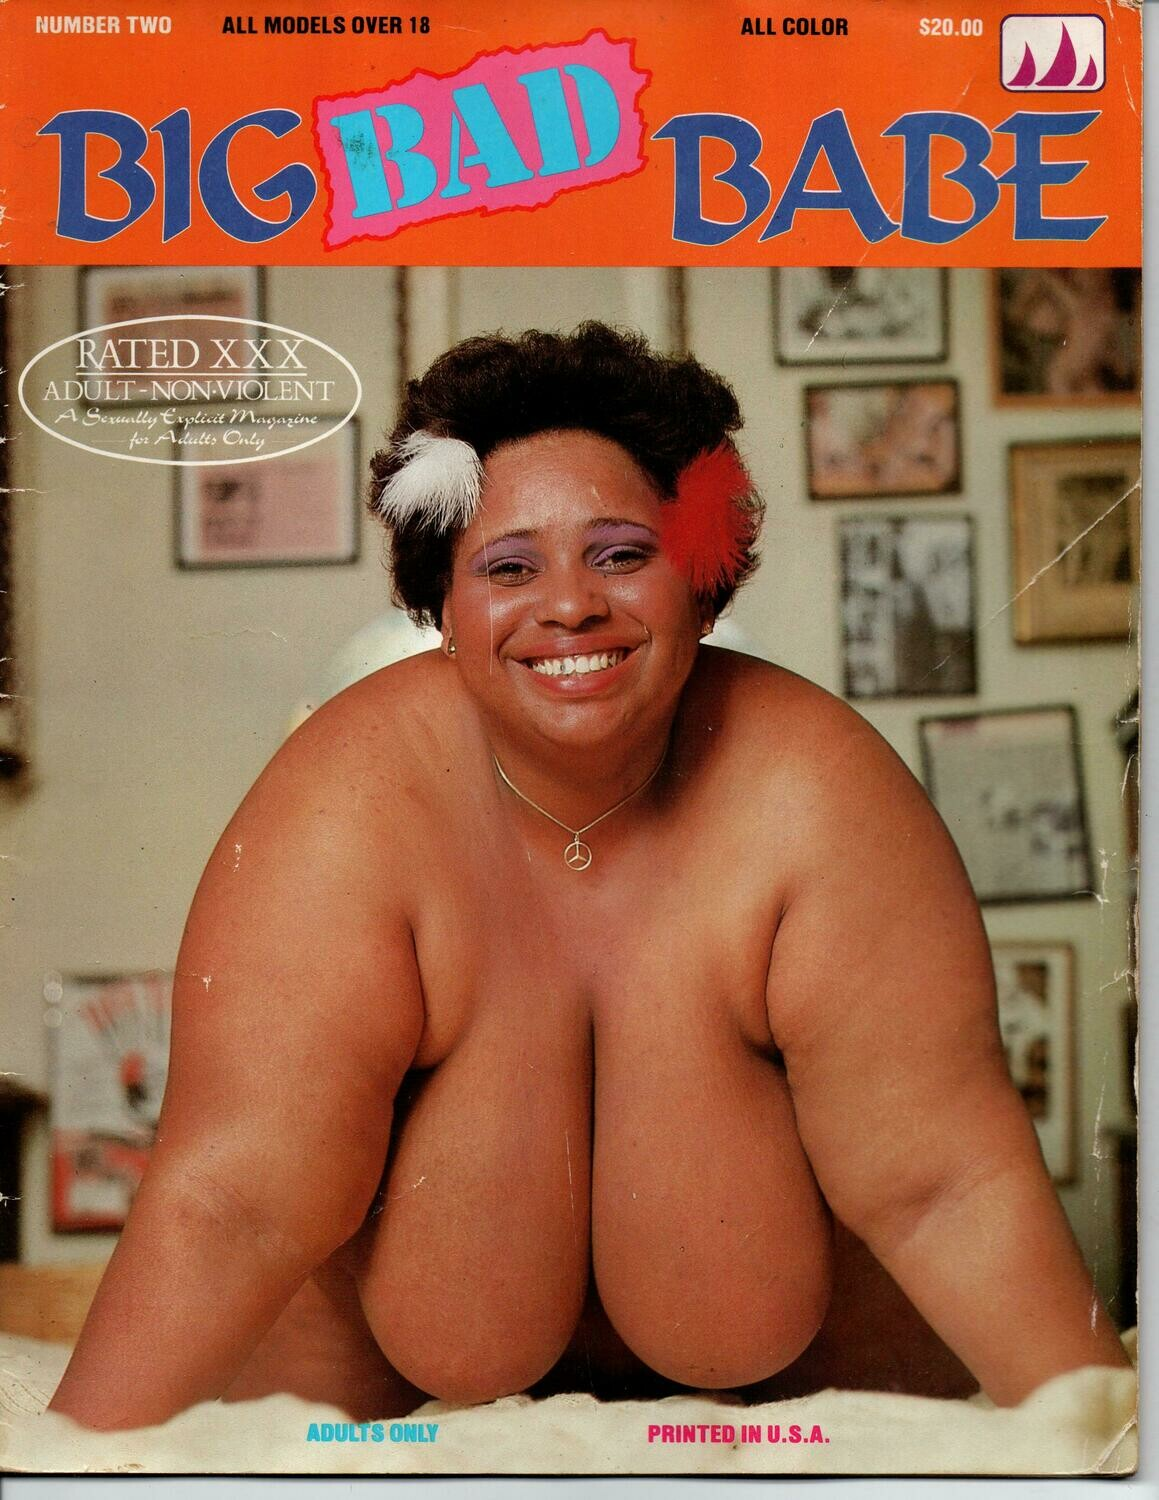 Big Bad Babe #2 All Color